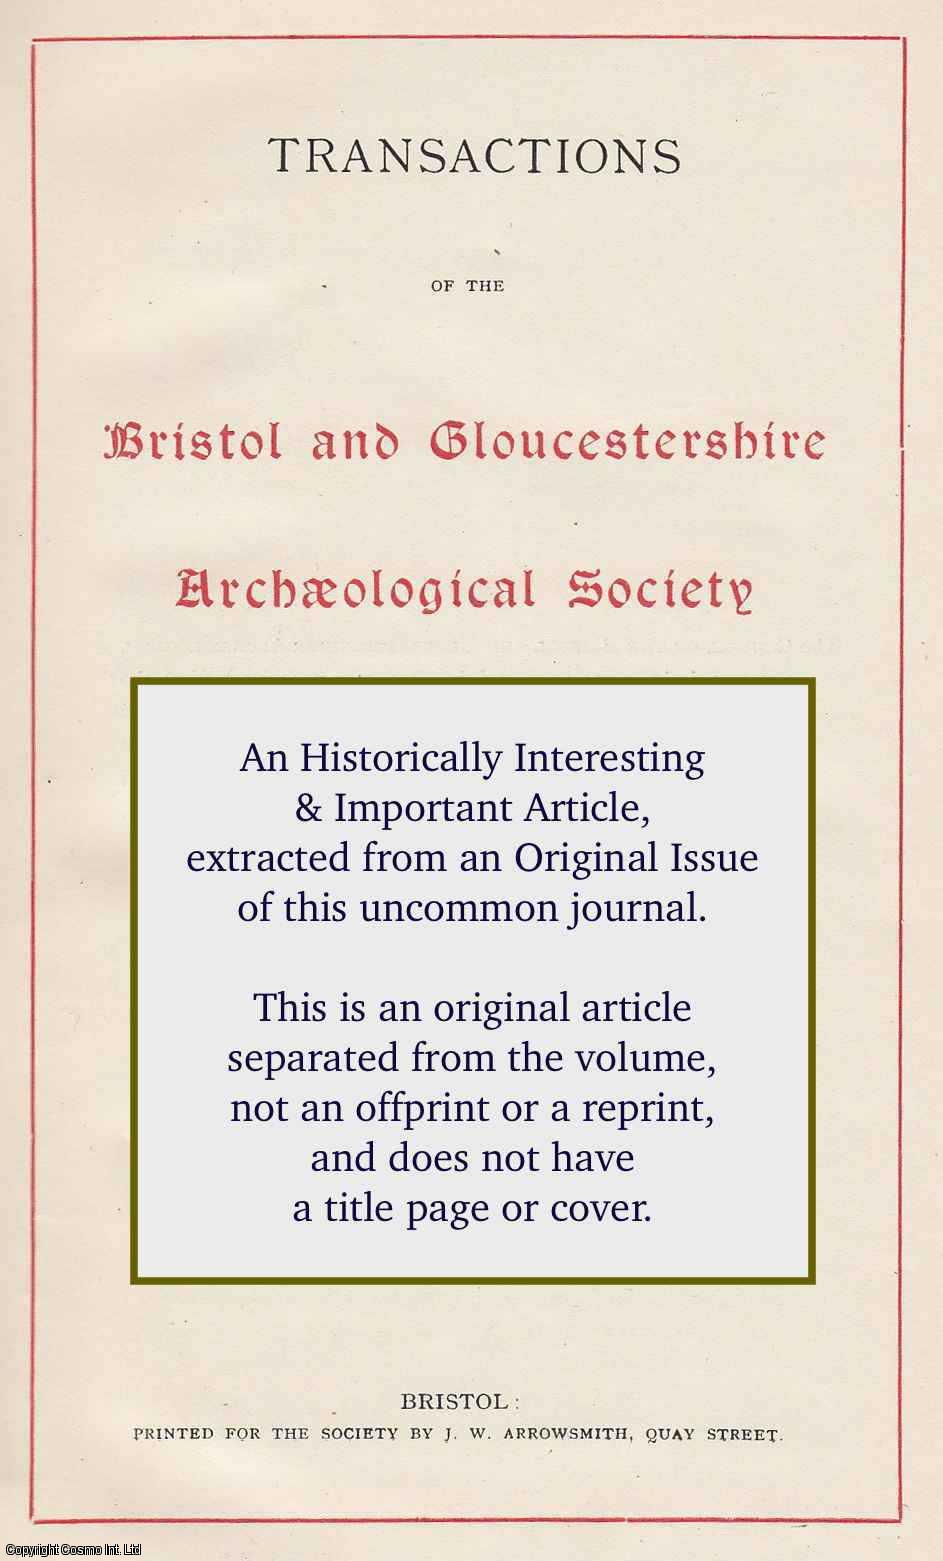 KNOWLES, W.H. - Elkstone Church, Gloucestershire. An original article from the Transactions of the Bristol and Gloucestershire Archaeological Society, 1930.